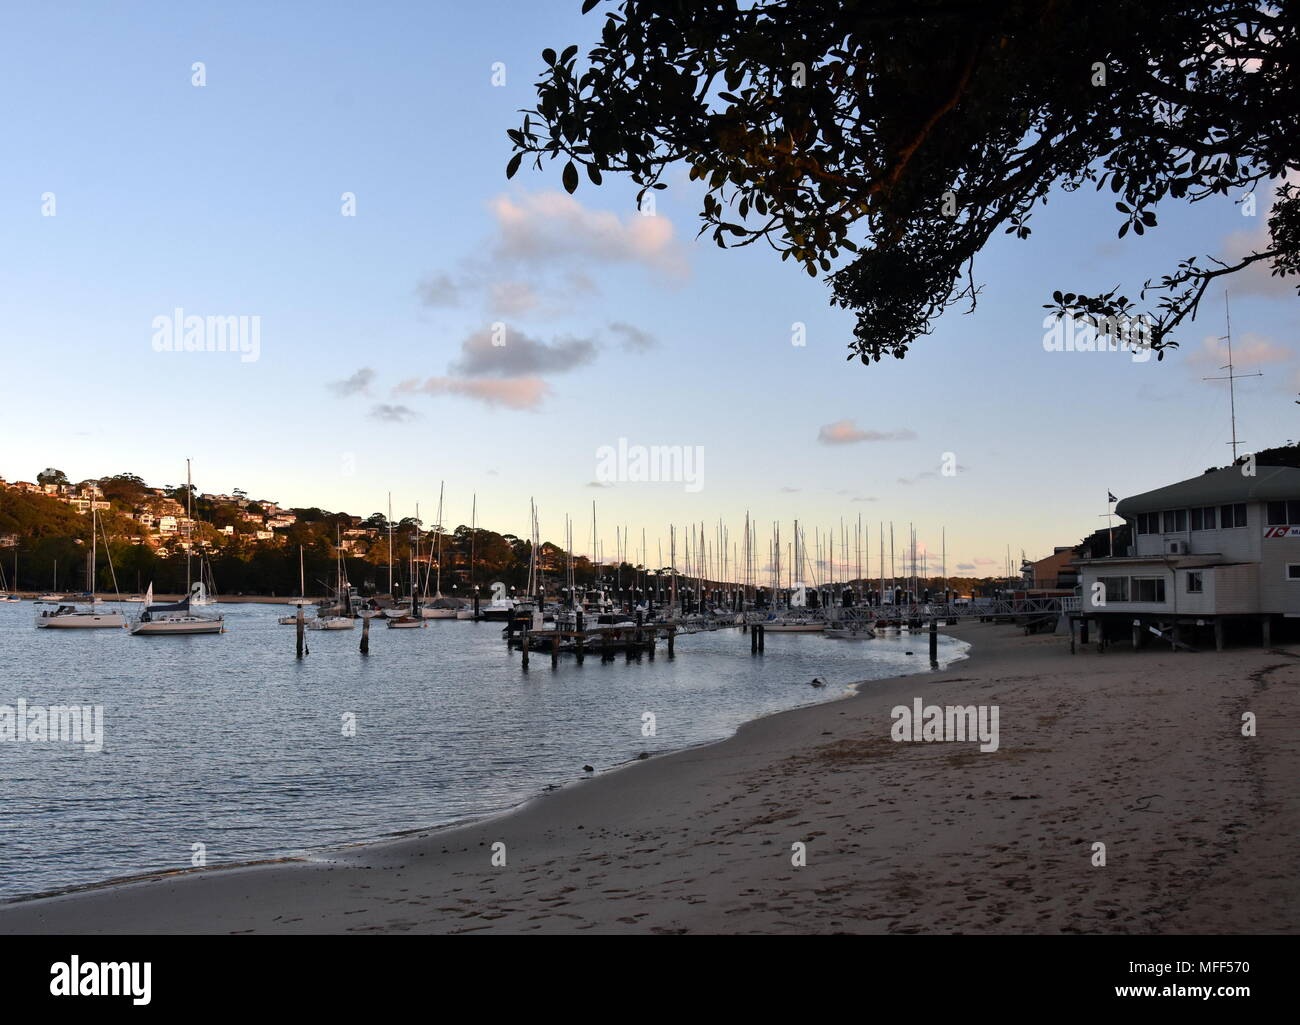 Many moored yachts and boats in Sandy bay at low tide (The Spit, Sydney, NSW, Australia). - Stock Image